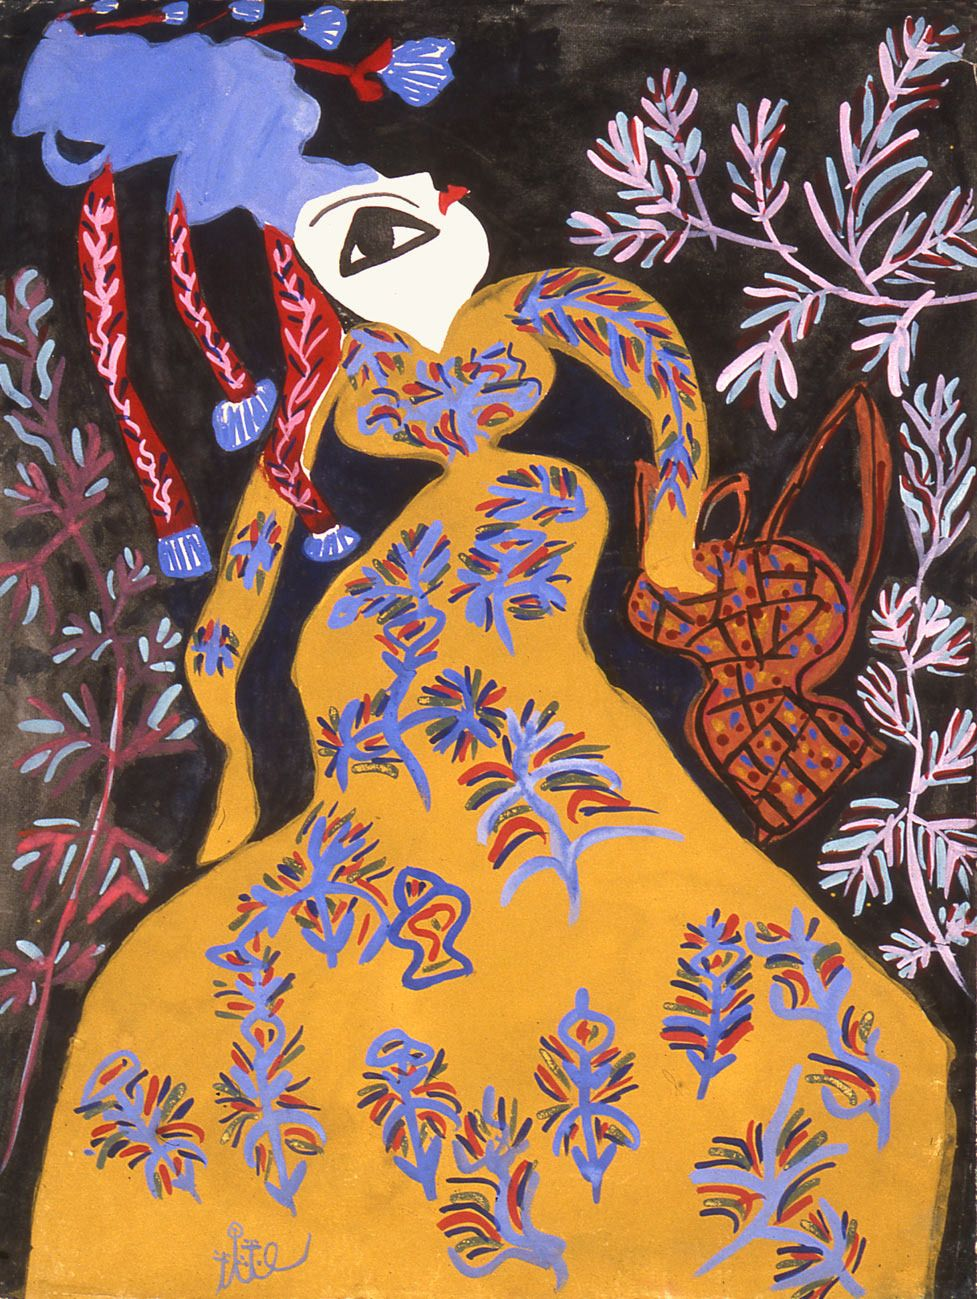 The 16-Year-Old Algerian Artist Who Influenced Picasso and Matisse | Grey  art, Abstract artists, Pablo picasso paintings